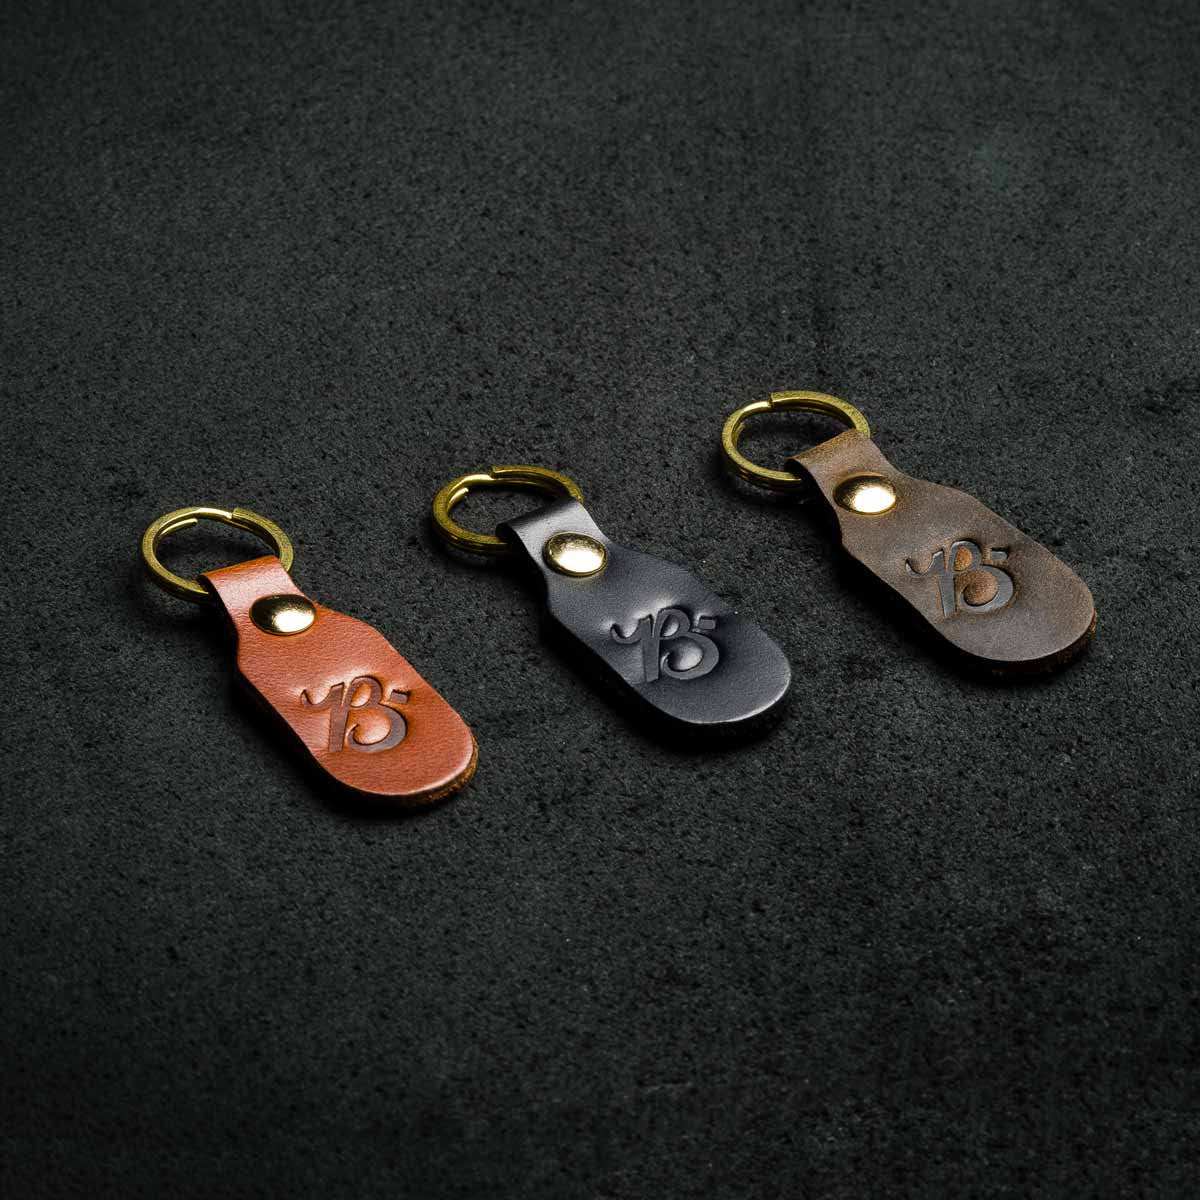 Chaveiro - B KEYCHAIN ENGRAVED - BRAVEMAN LEATHER GOODS